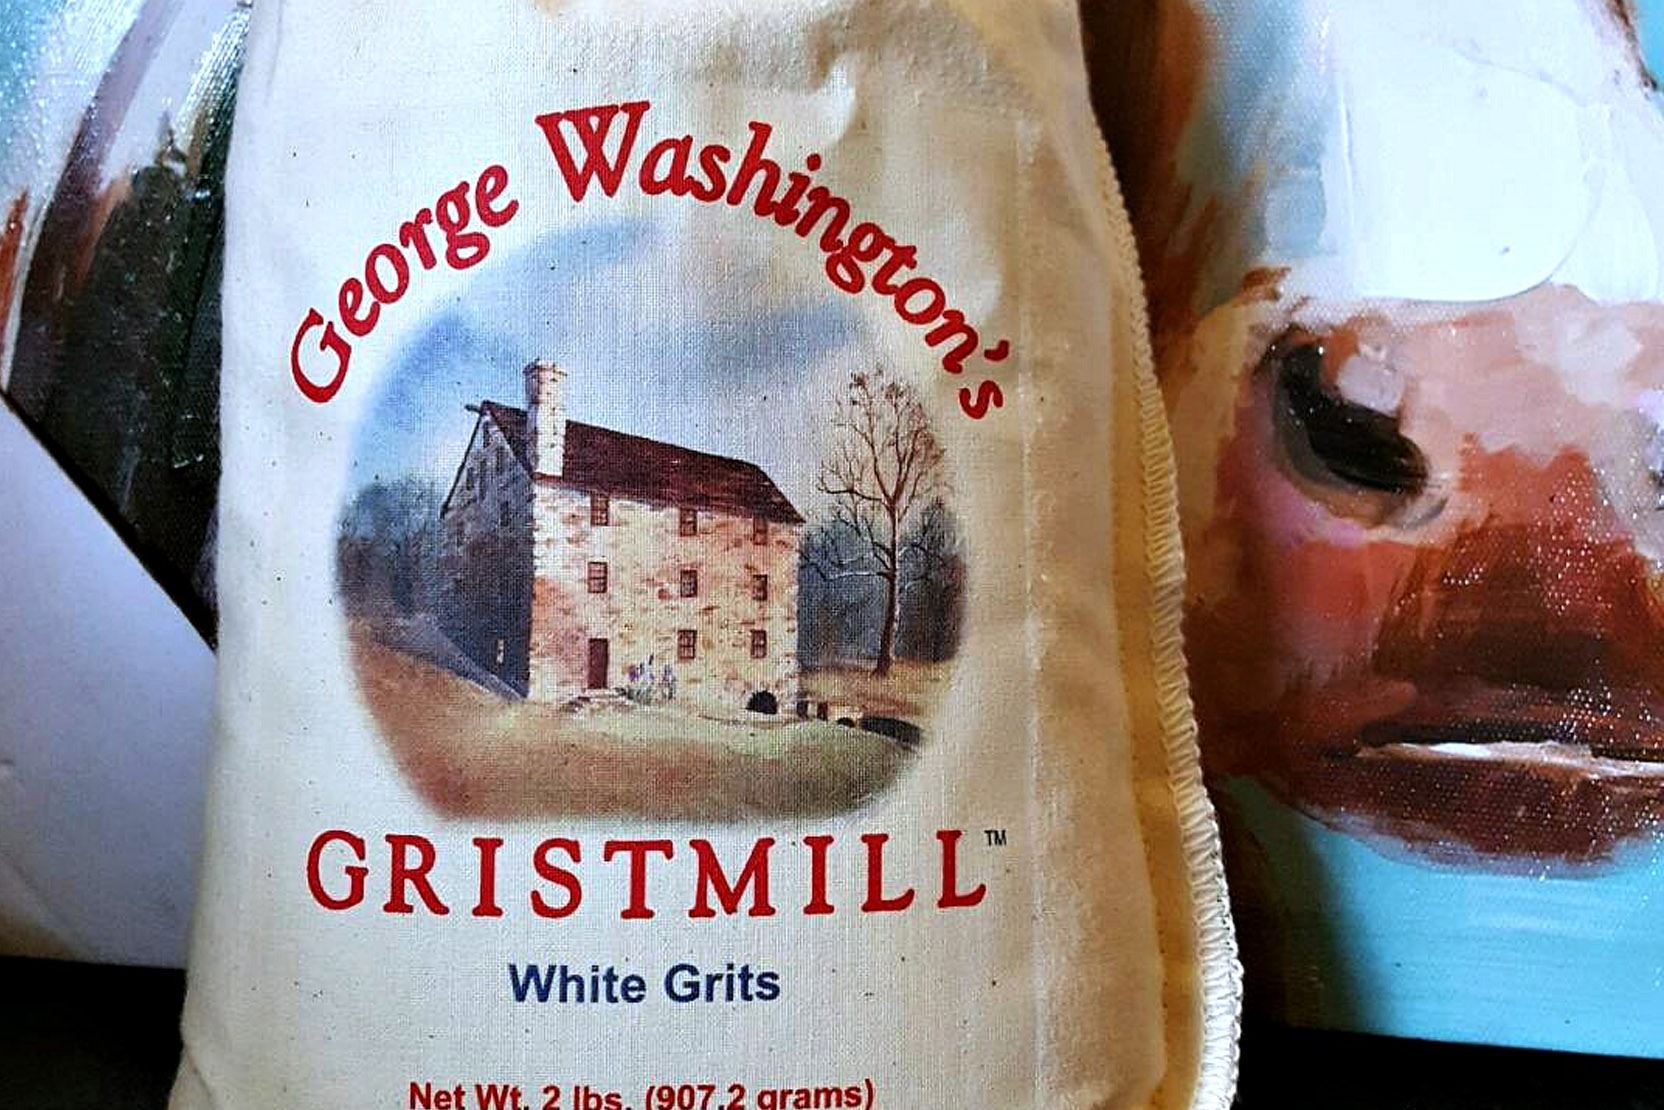 gristmill0518_washington_grits Products made and sold at George Washington's Gristmill at Mount Vernon include white and yellow grits and cornmeal, and pancake mix.